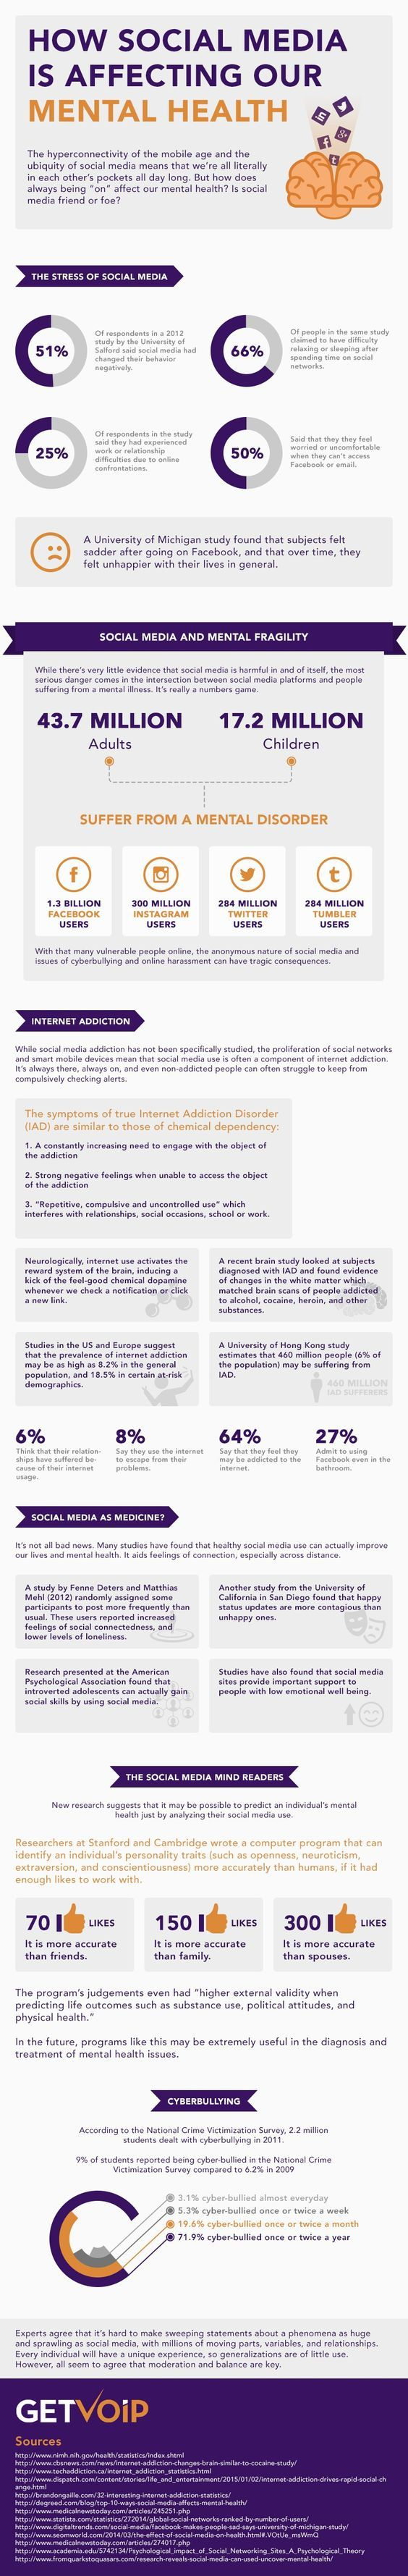 How Social Media is Affecting Our Mental Health [Infographic]